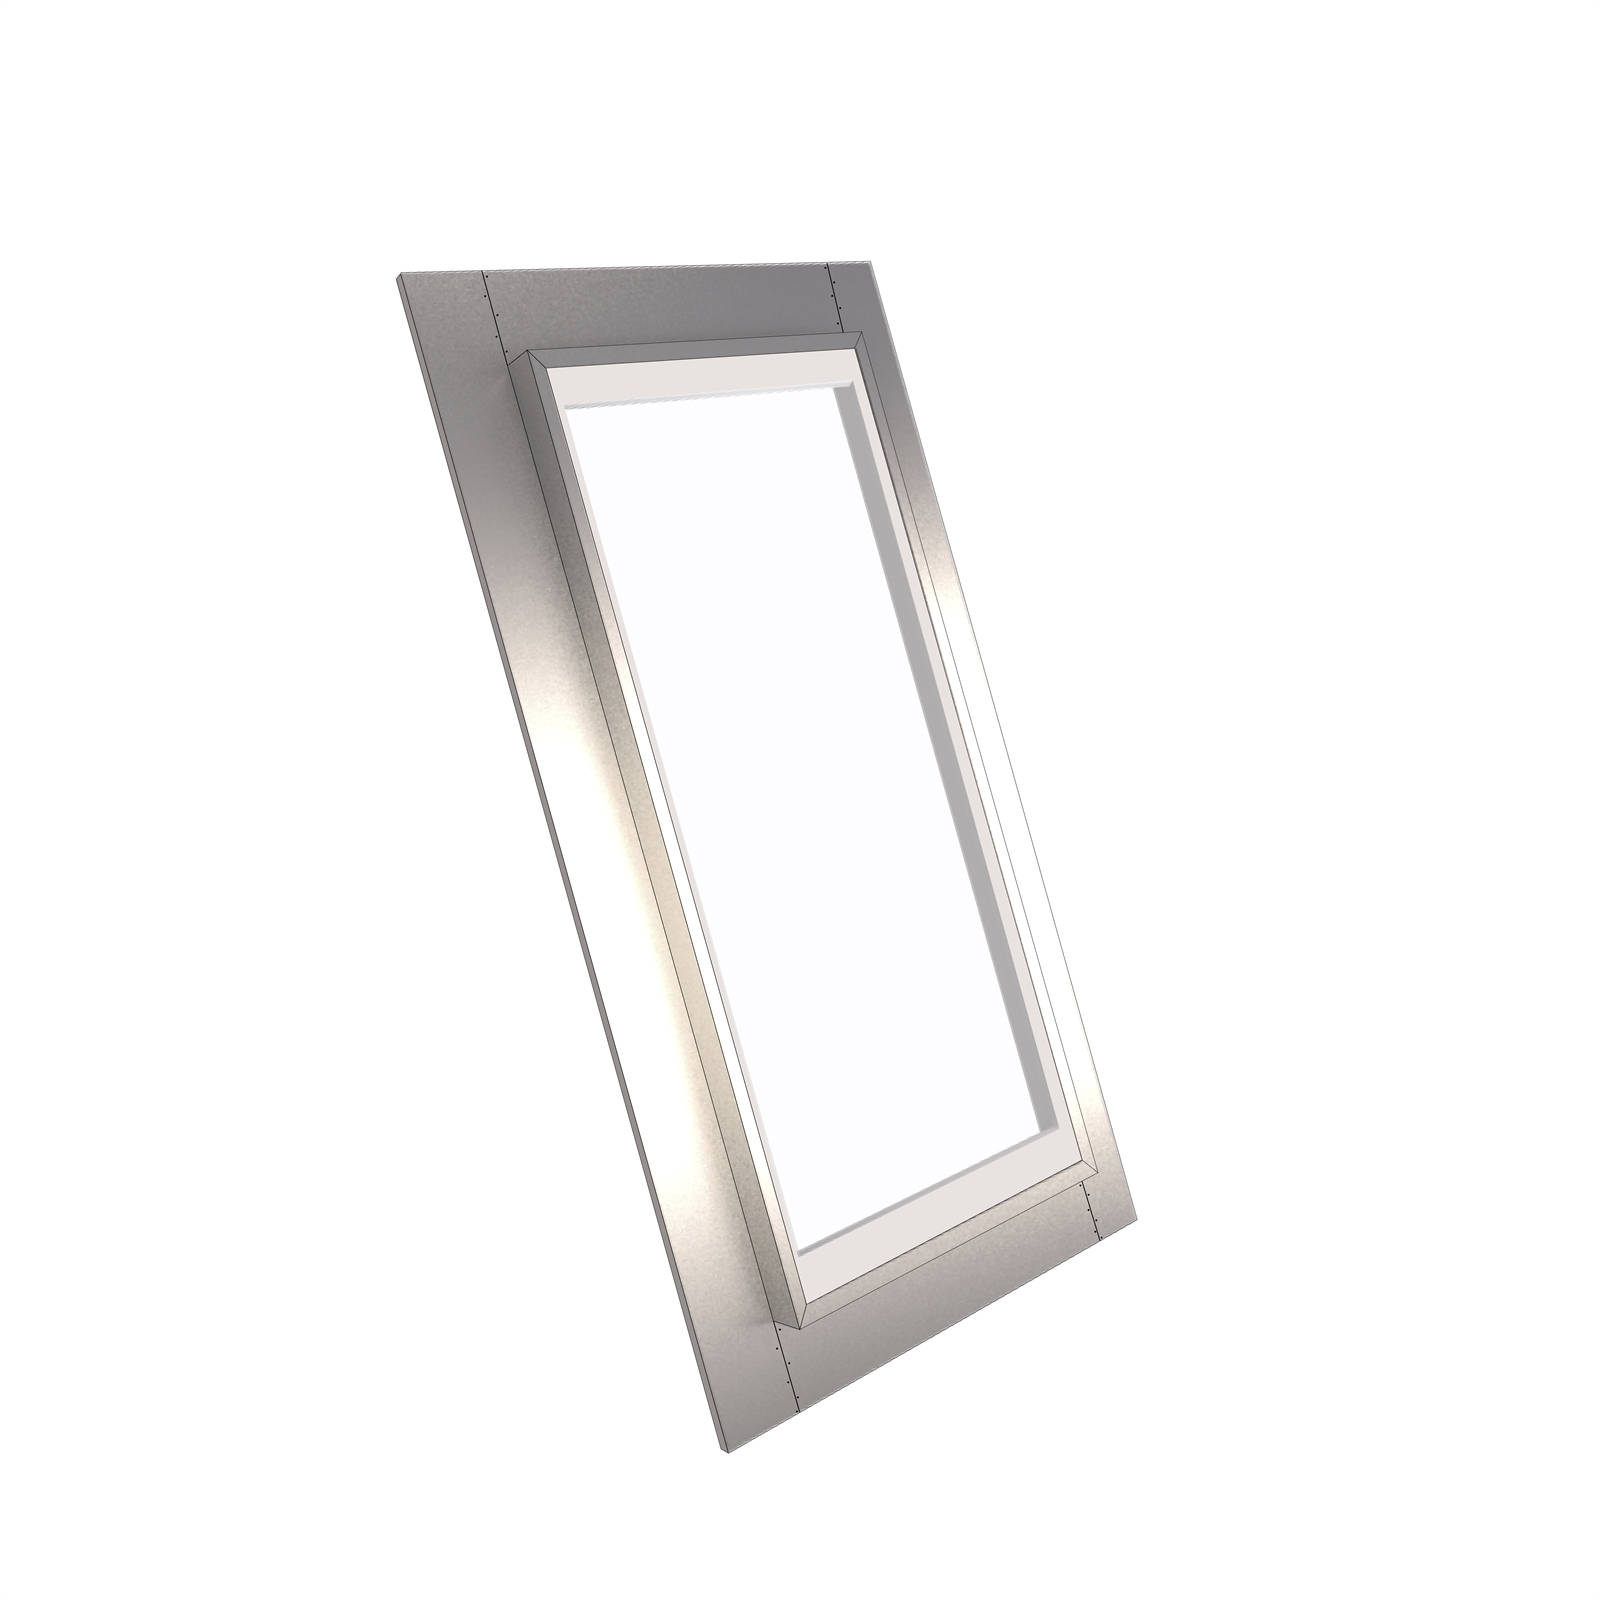 EzyLite 800 x 550mm Fixed Roof Window For Corrugated Roof - Smart Glass